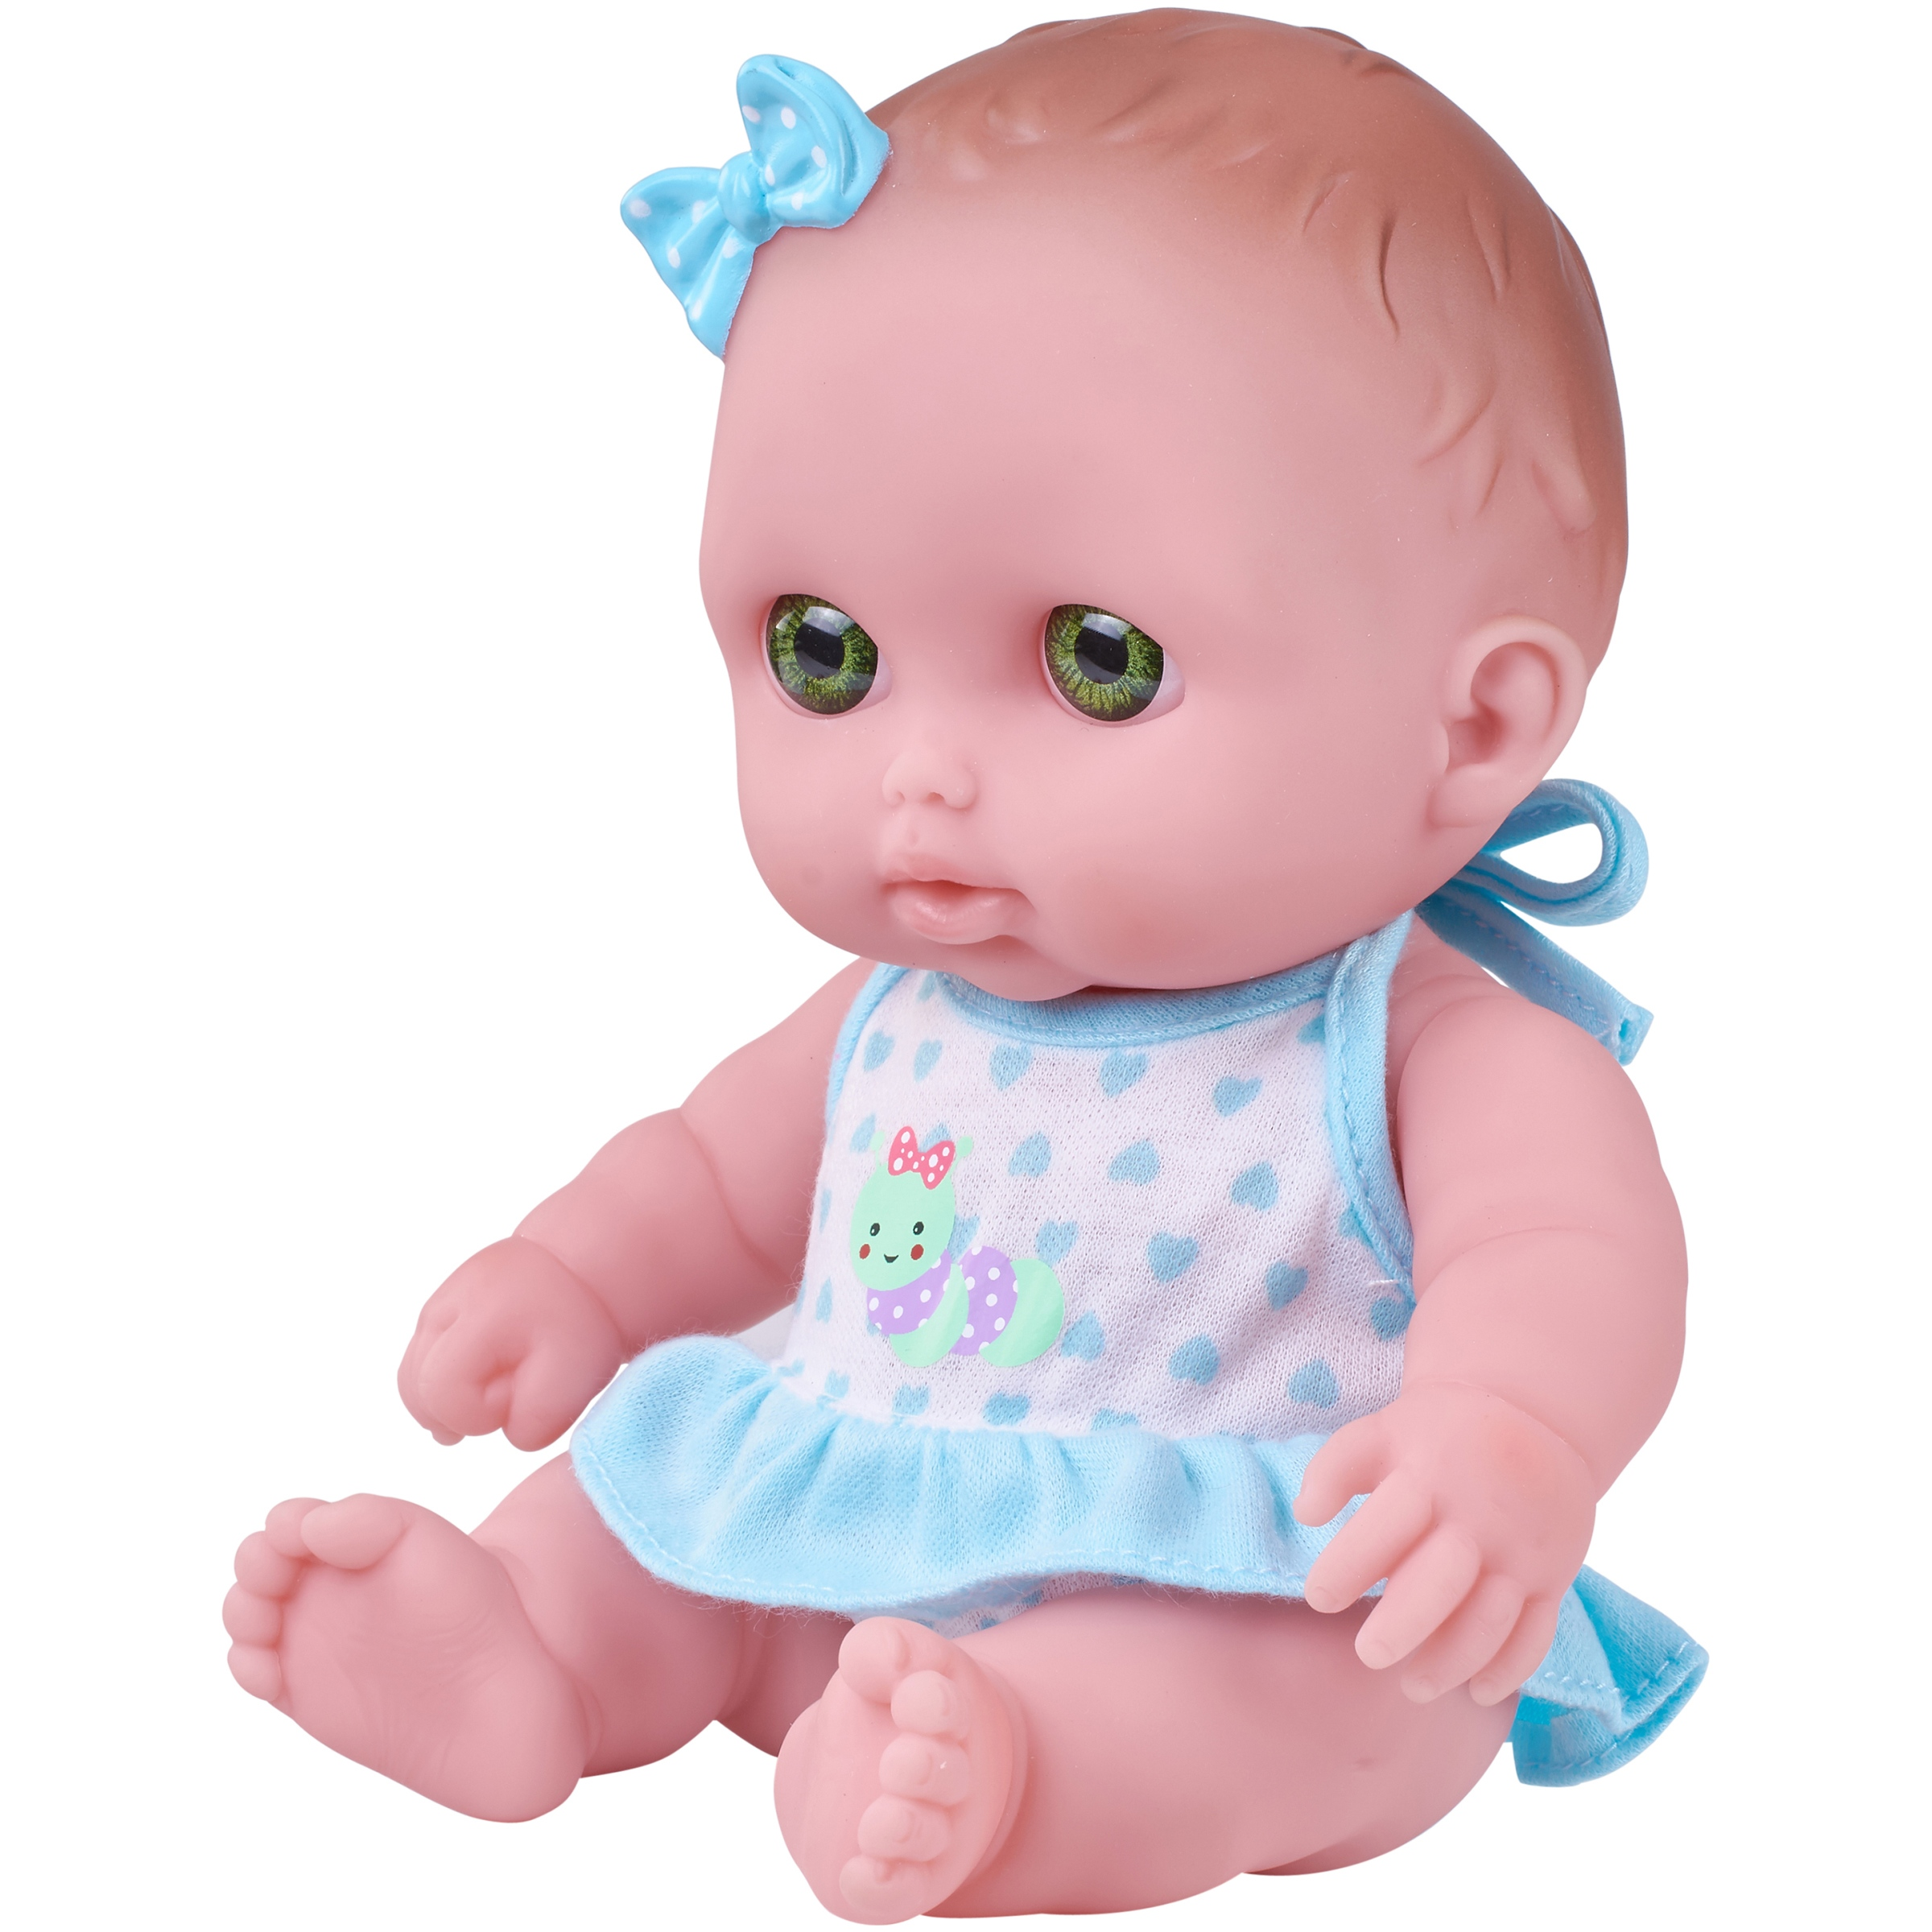 "My Sweet Love Lil Cutsies 8.5"" Baby Doll with Blue and White Outfit"